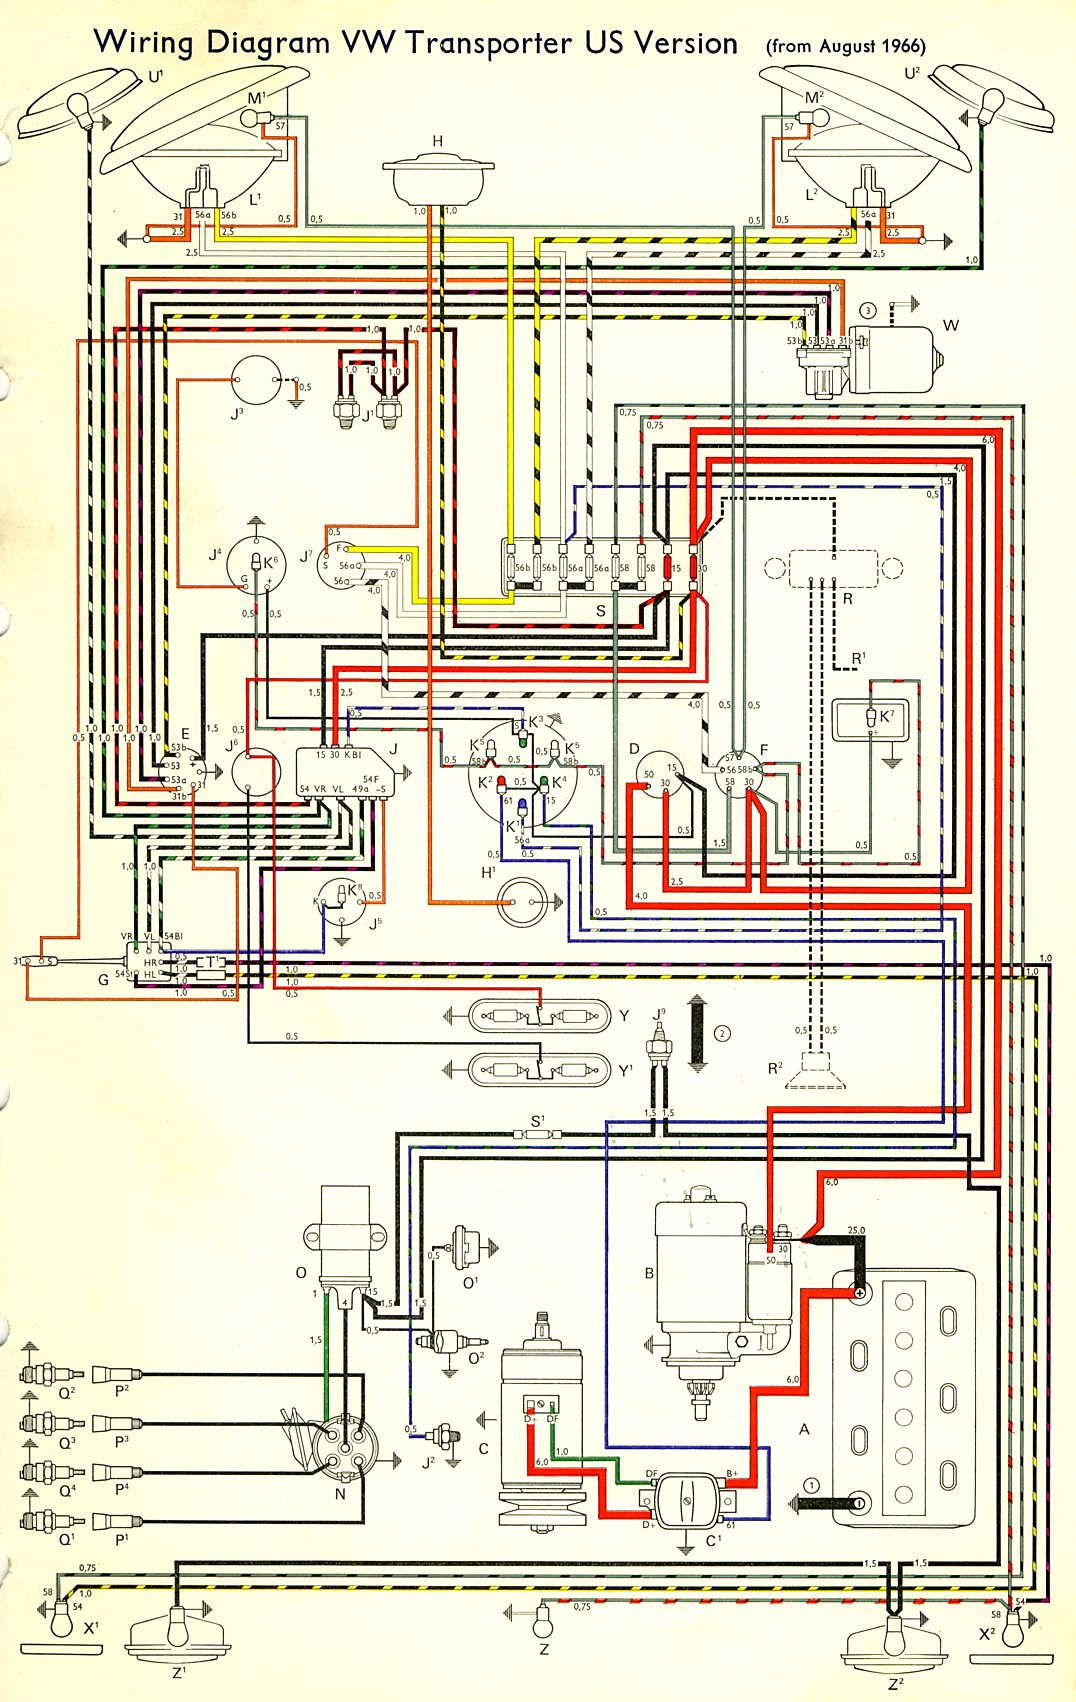 samba vw bus wiring diagram schematics wiring diagrams u2022 rh orwellvets co 1975 volkswagen beetle wiring diagram 1975 vw beetle fuse box diagram